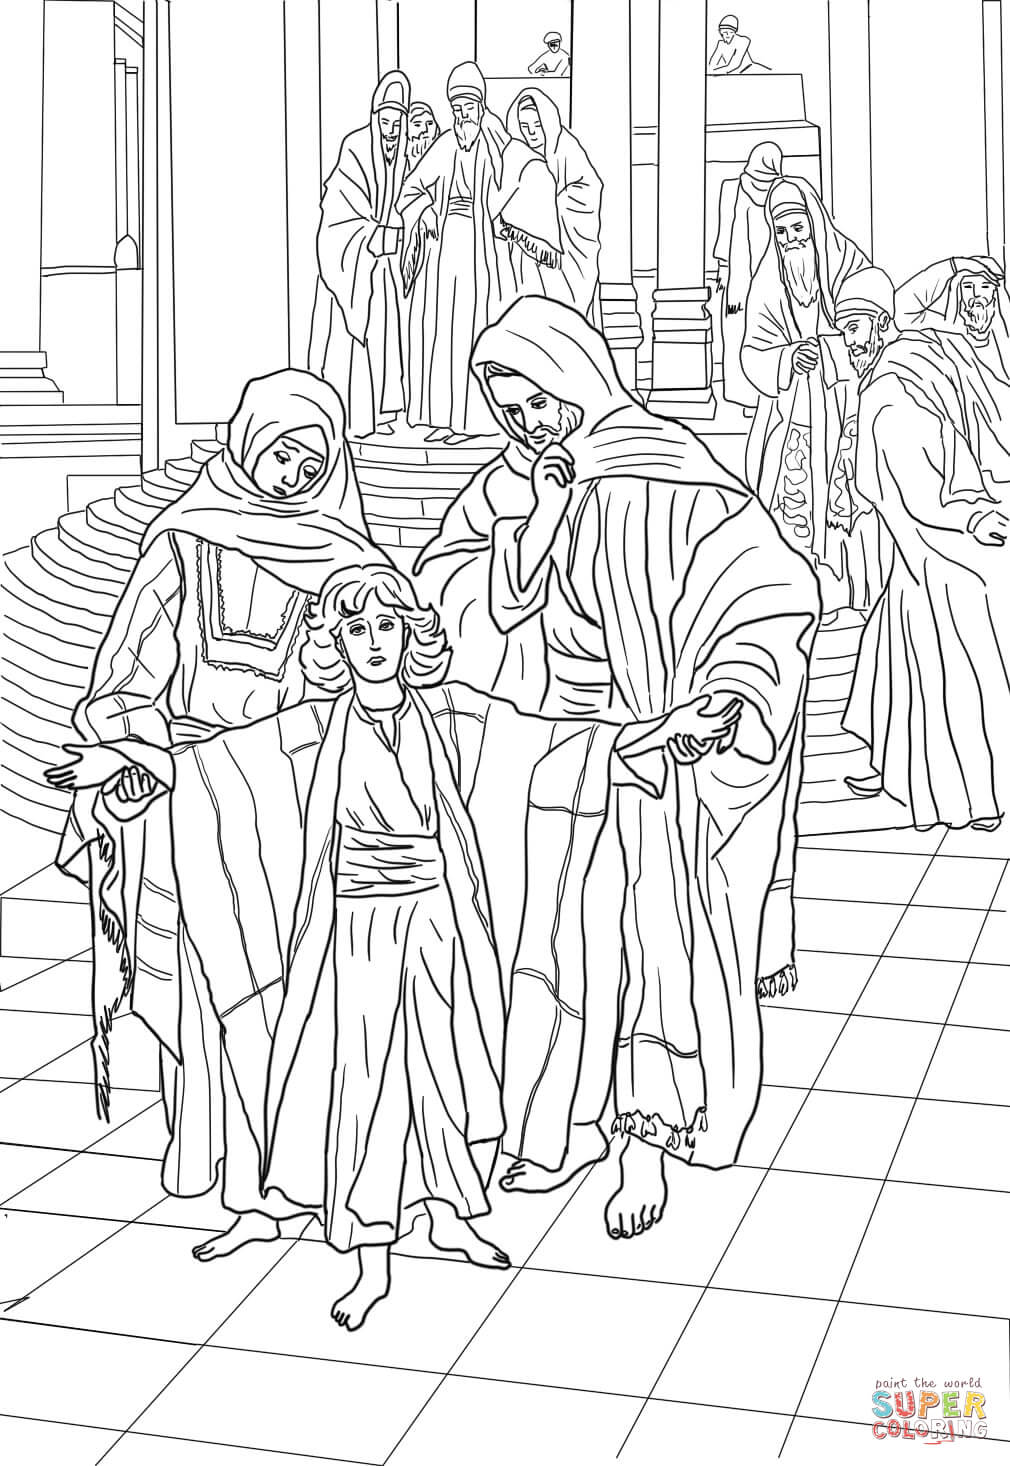 12 Year Old Jesus Found In The Temple Coloring Page Free